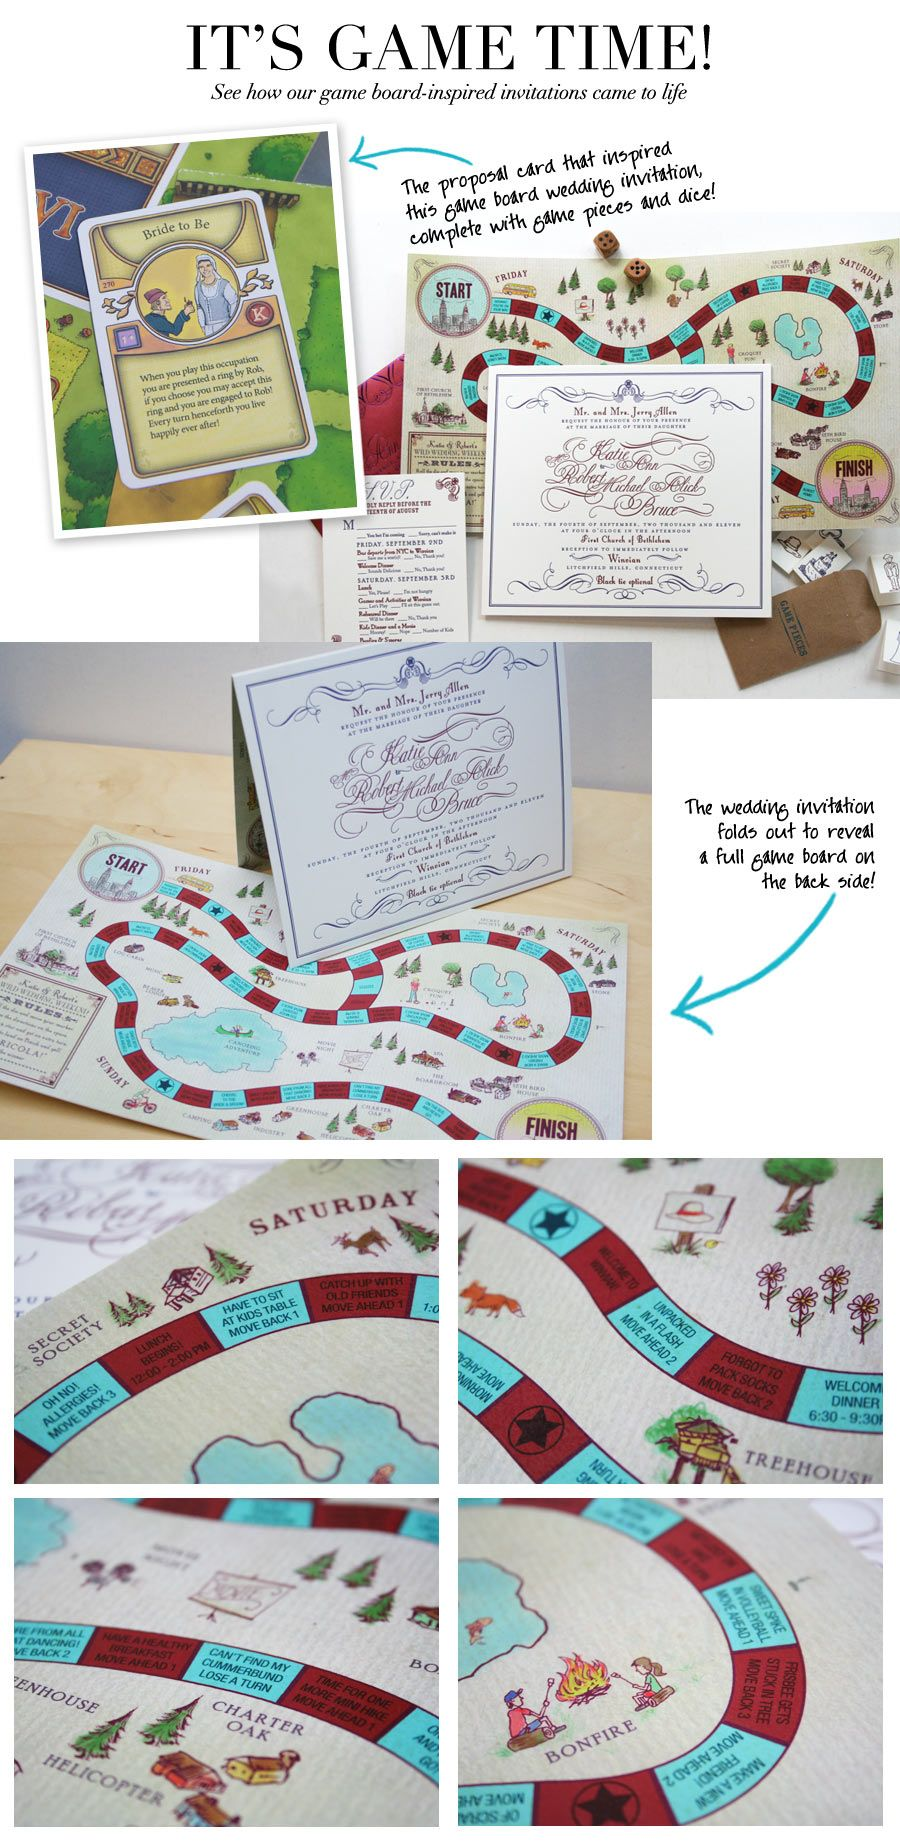 Cute board game invitation this guy actually proposed by making a cute board game invitation this guy actually proposed by making a special card and shuffling stopboris Choice Image